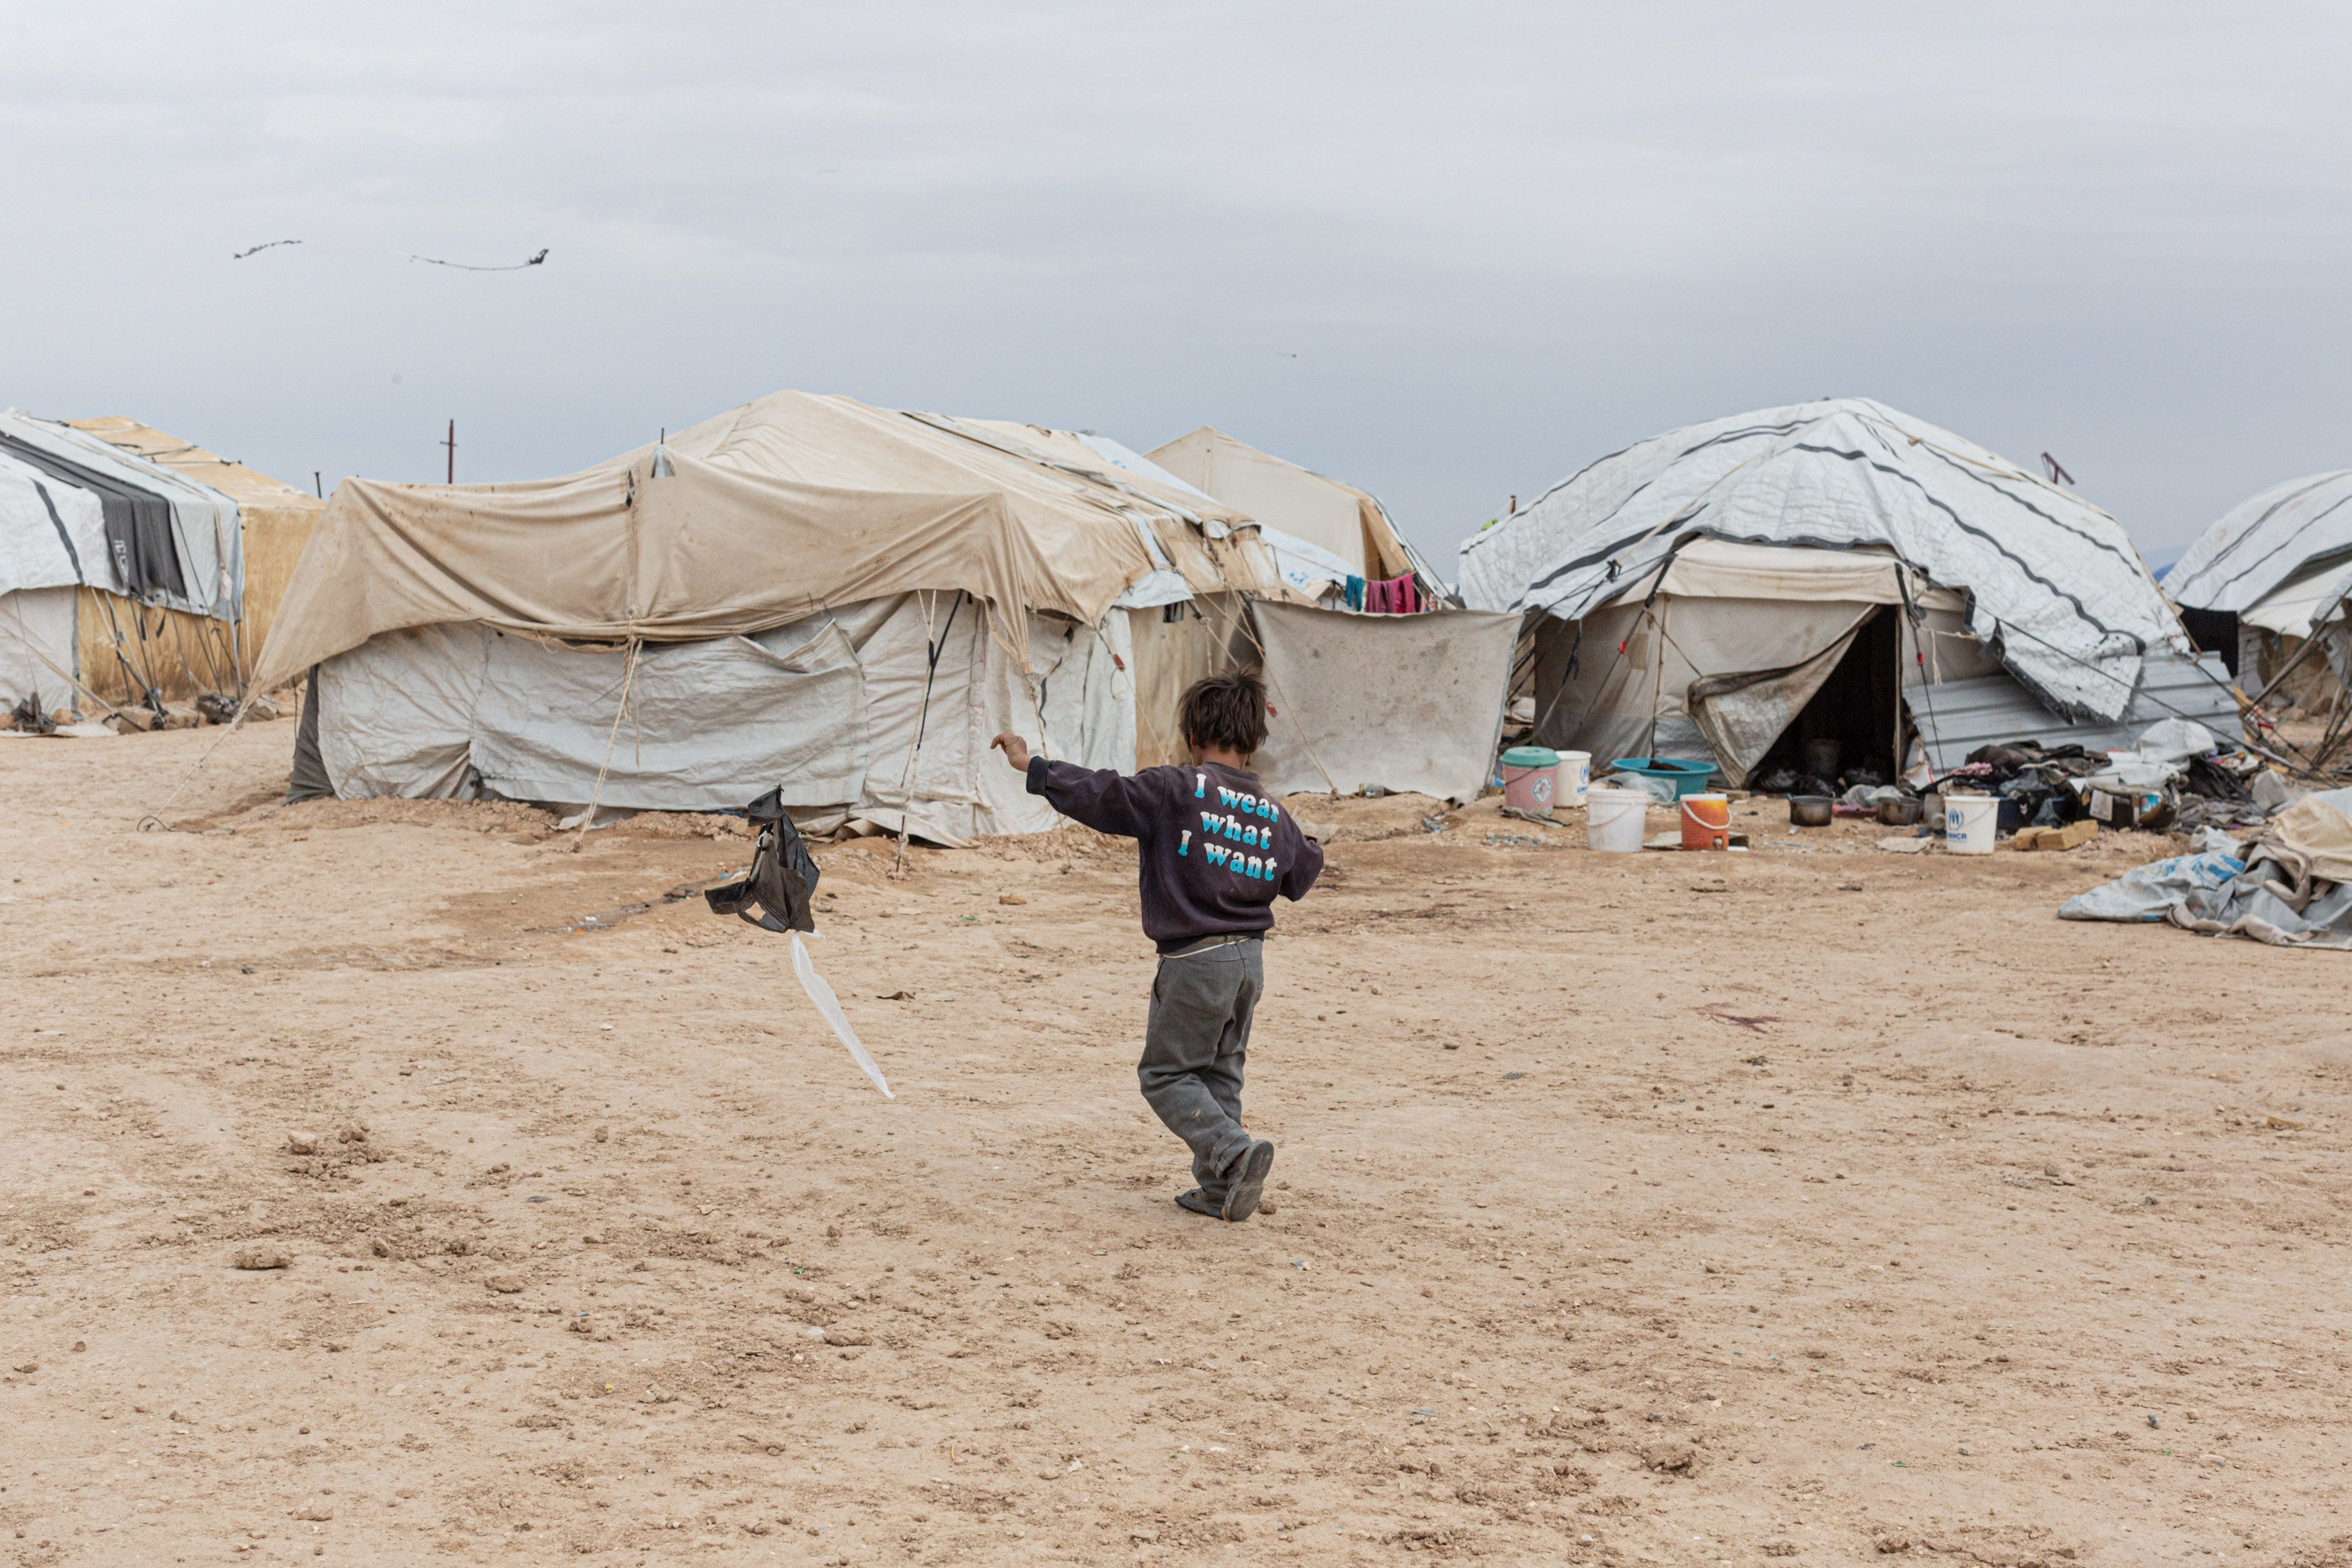 A boy flies a home-made kite in the foreigners' section of al-Hol camp in northeast Syria on March 15, 2021.